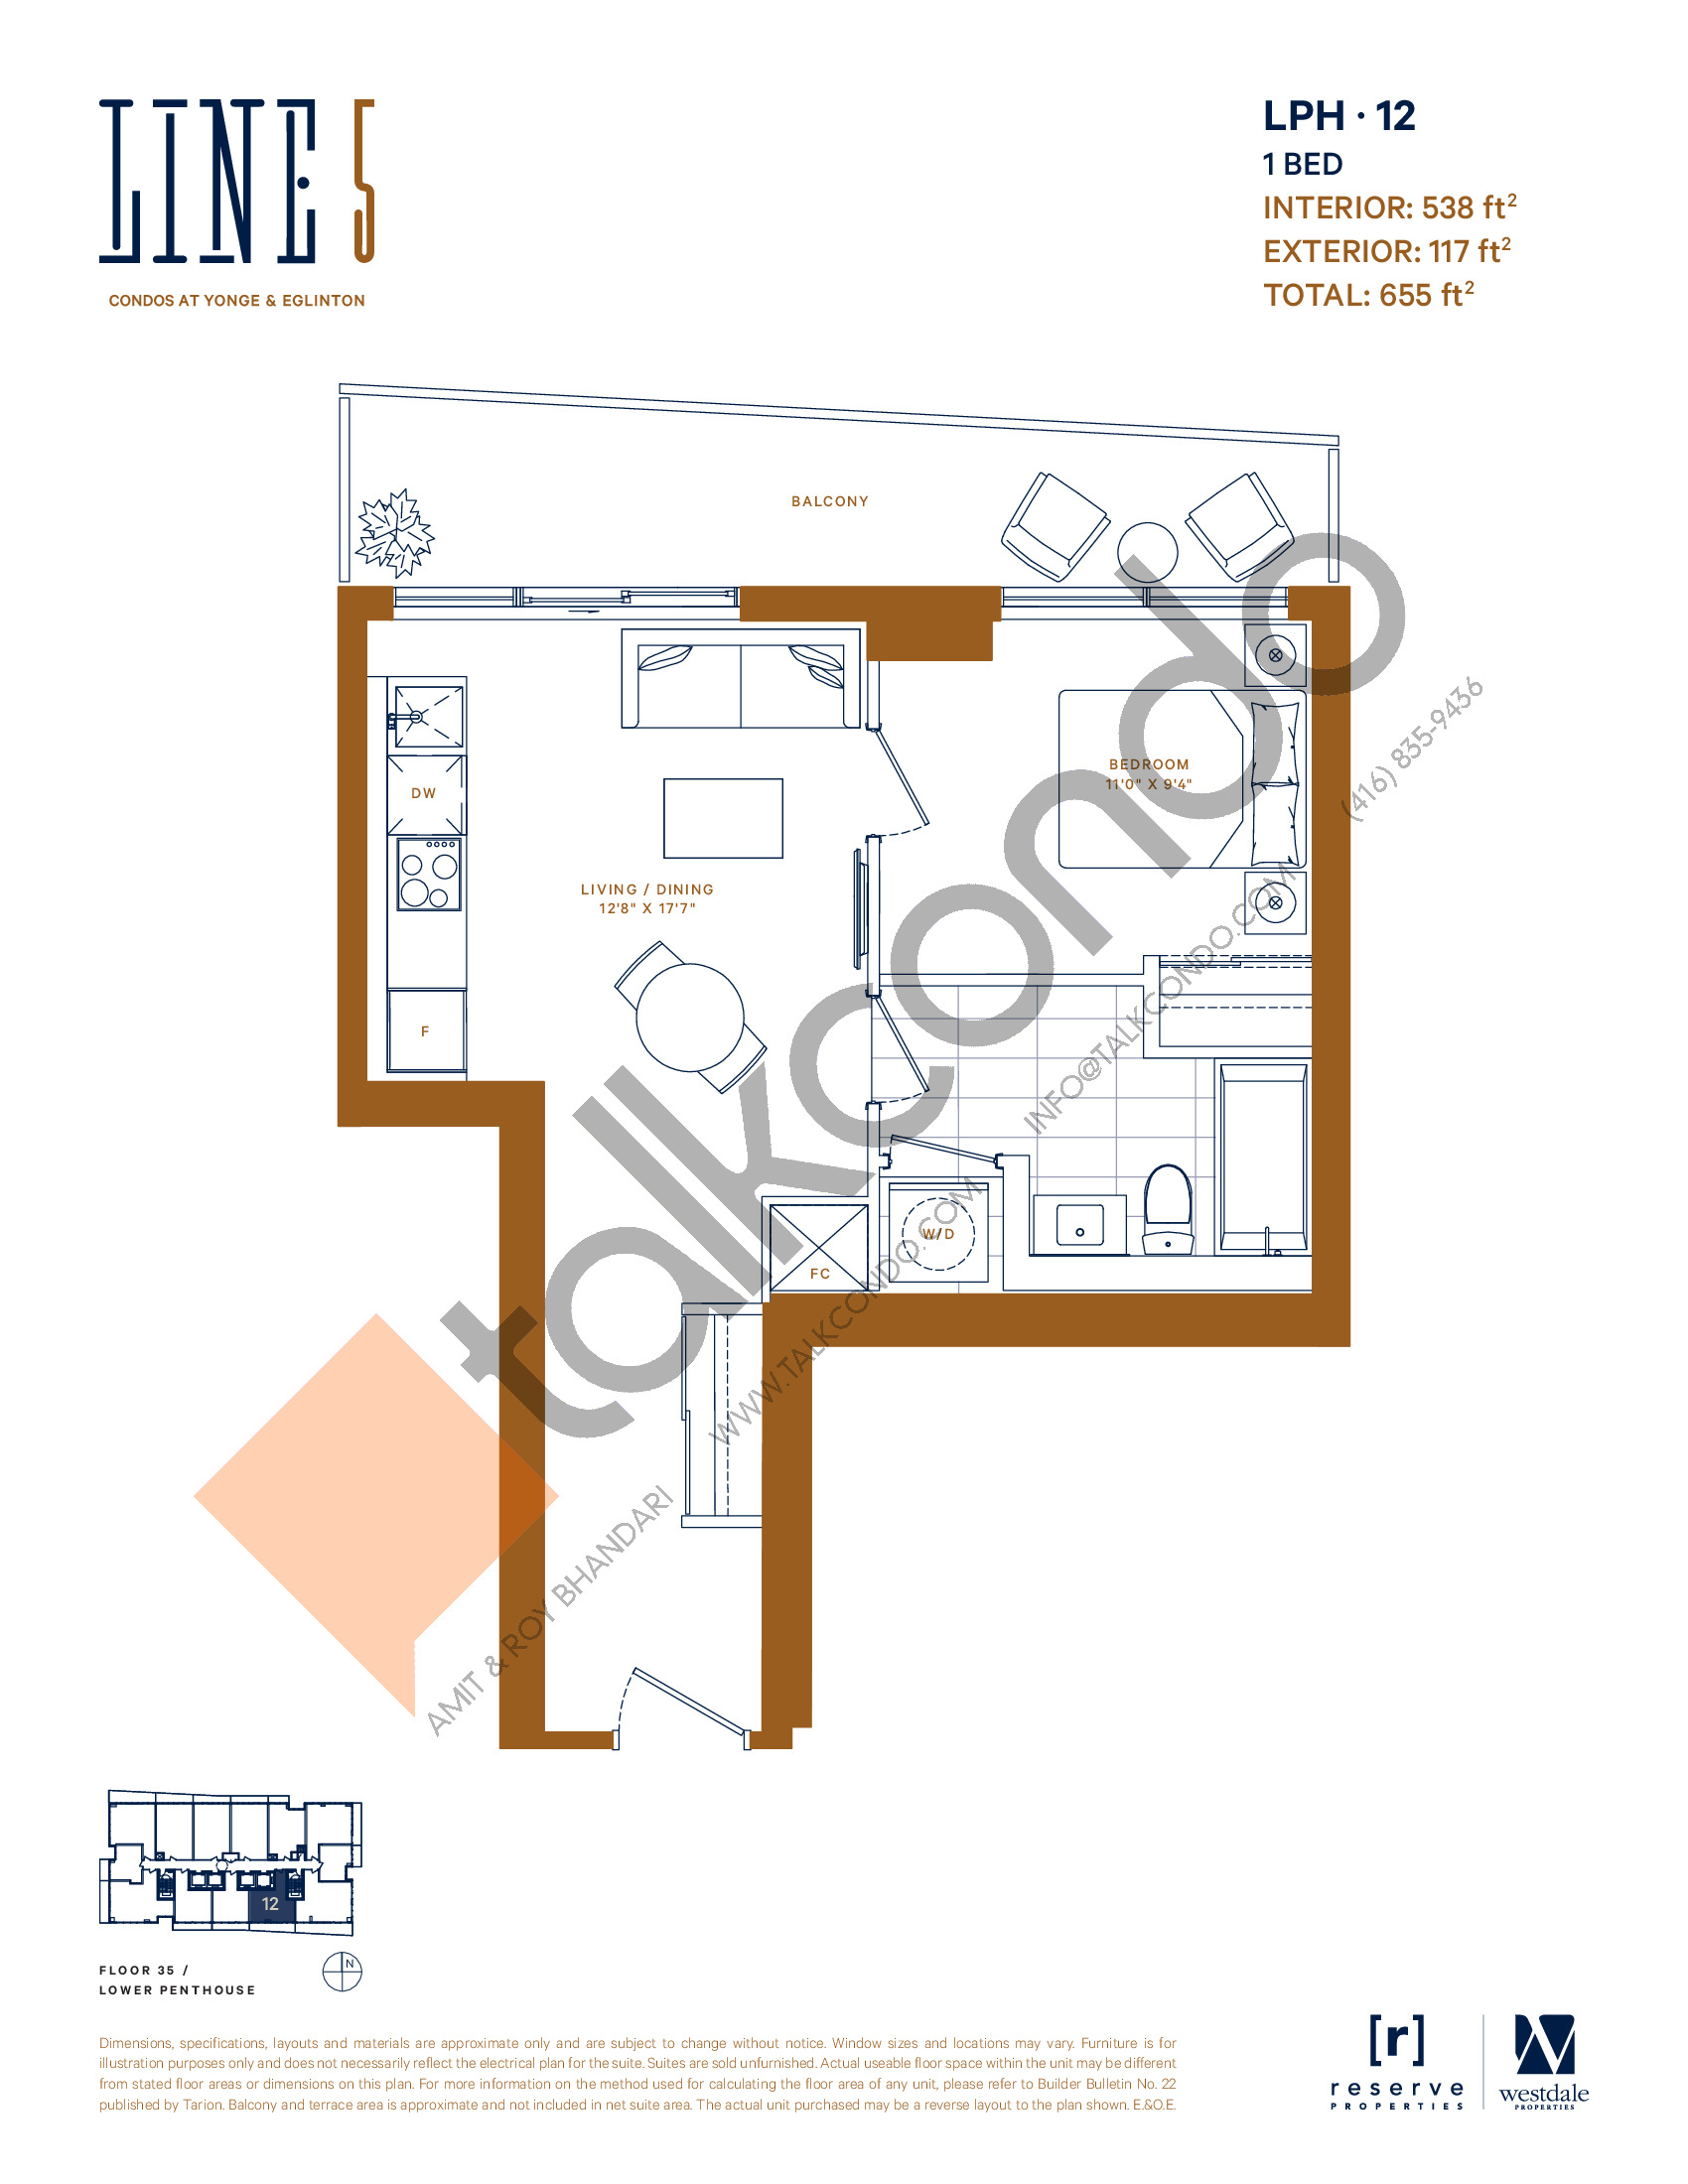 LPH-12 Floor Plan at Line 5 South Tower Condos - 538 sq.ft